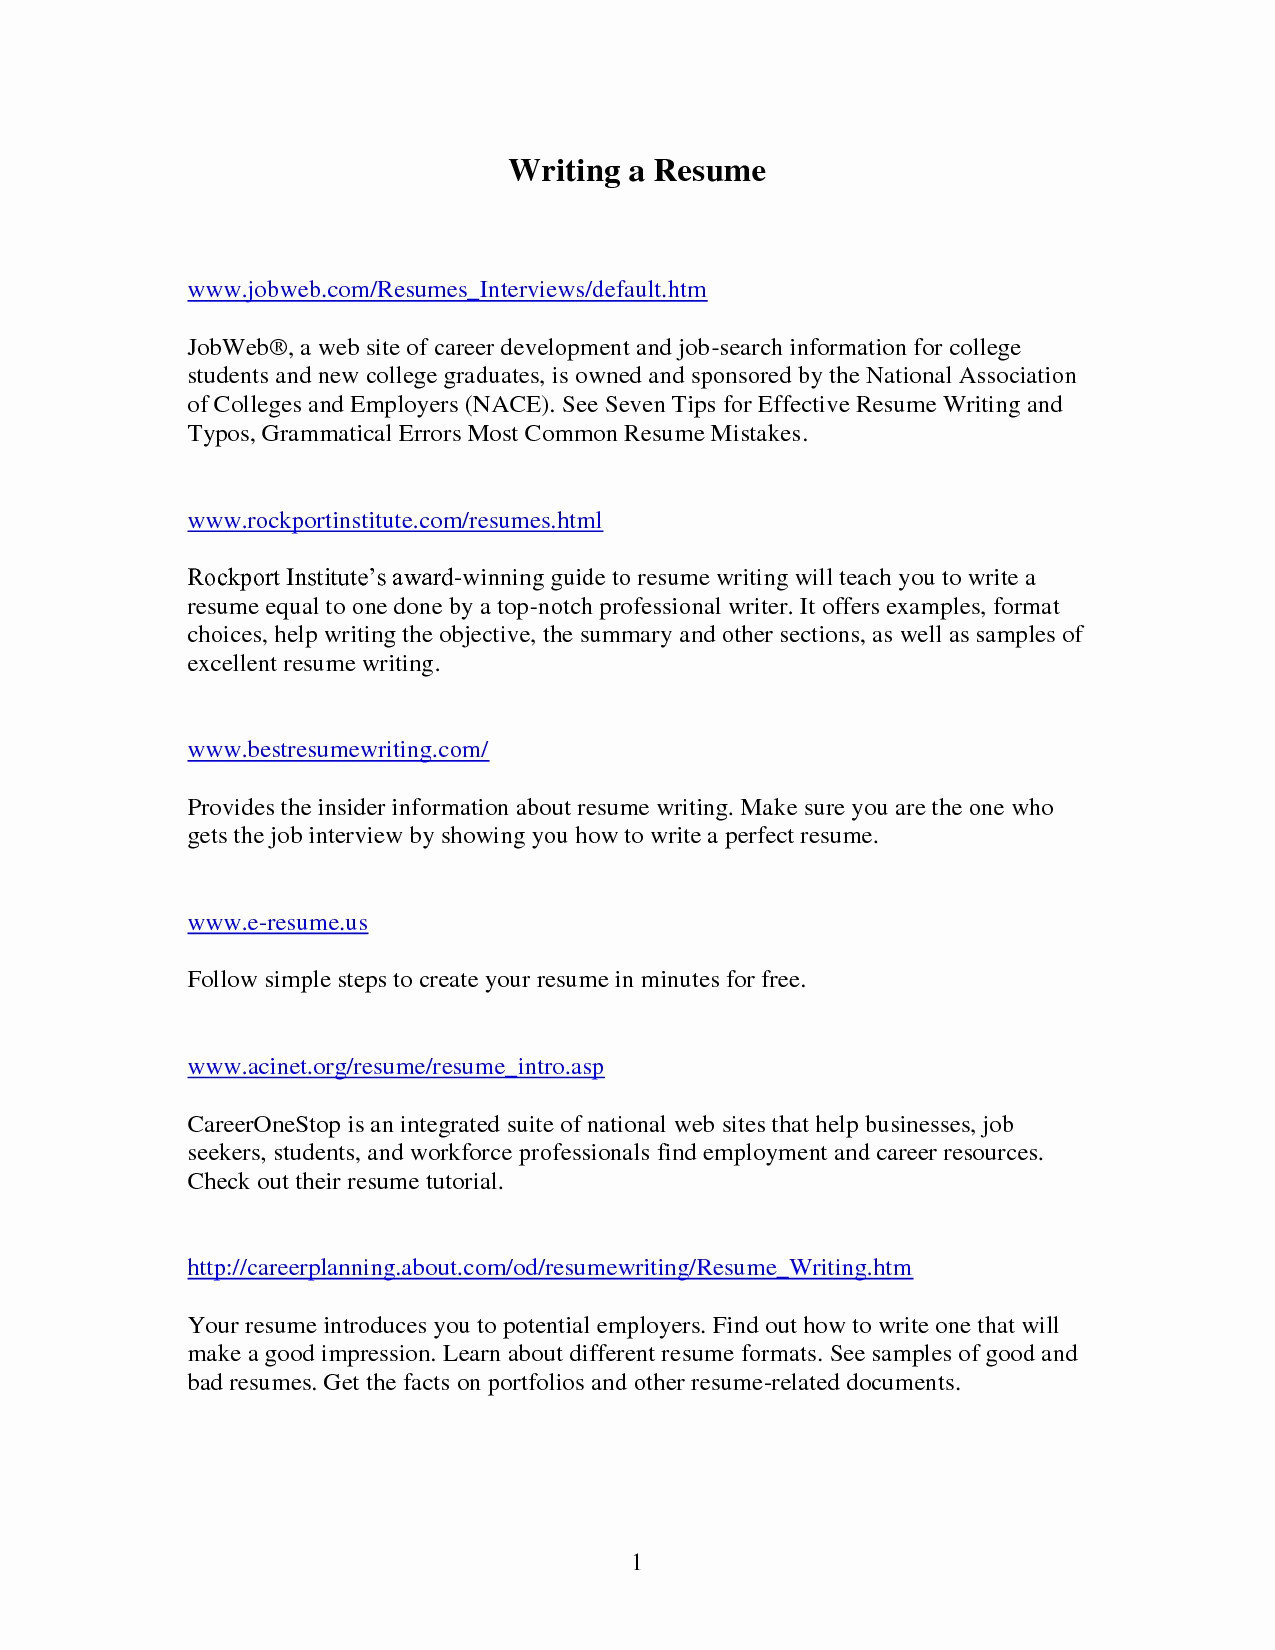 Resume and Linkedin Profile Writing - Resume and Linkedin Profile Writing Example Create Resume From